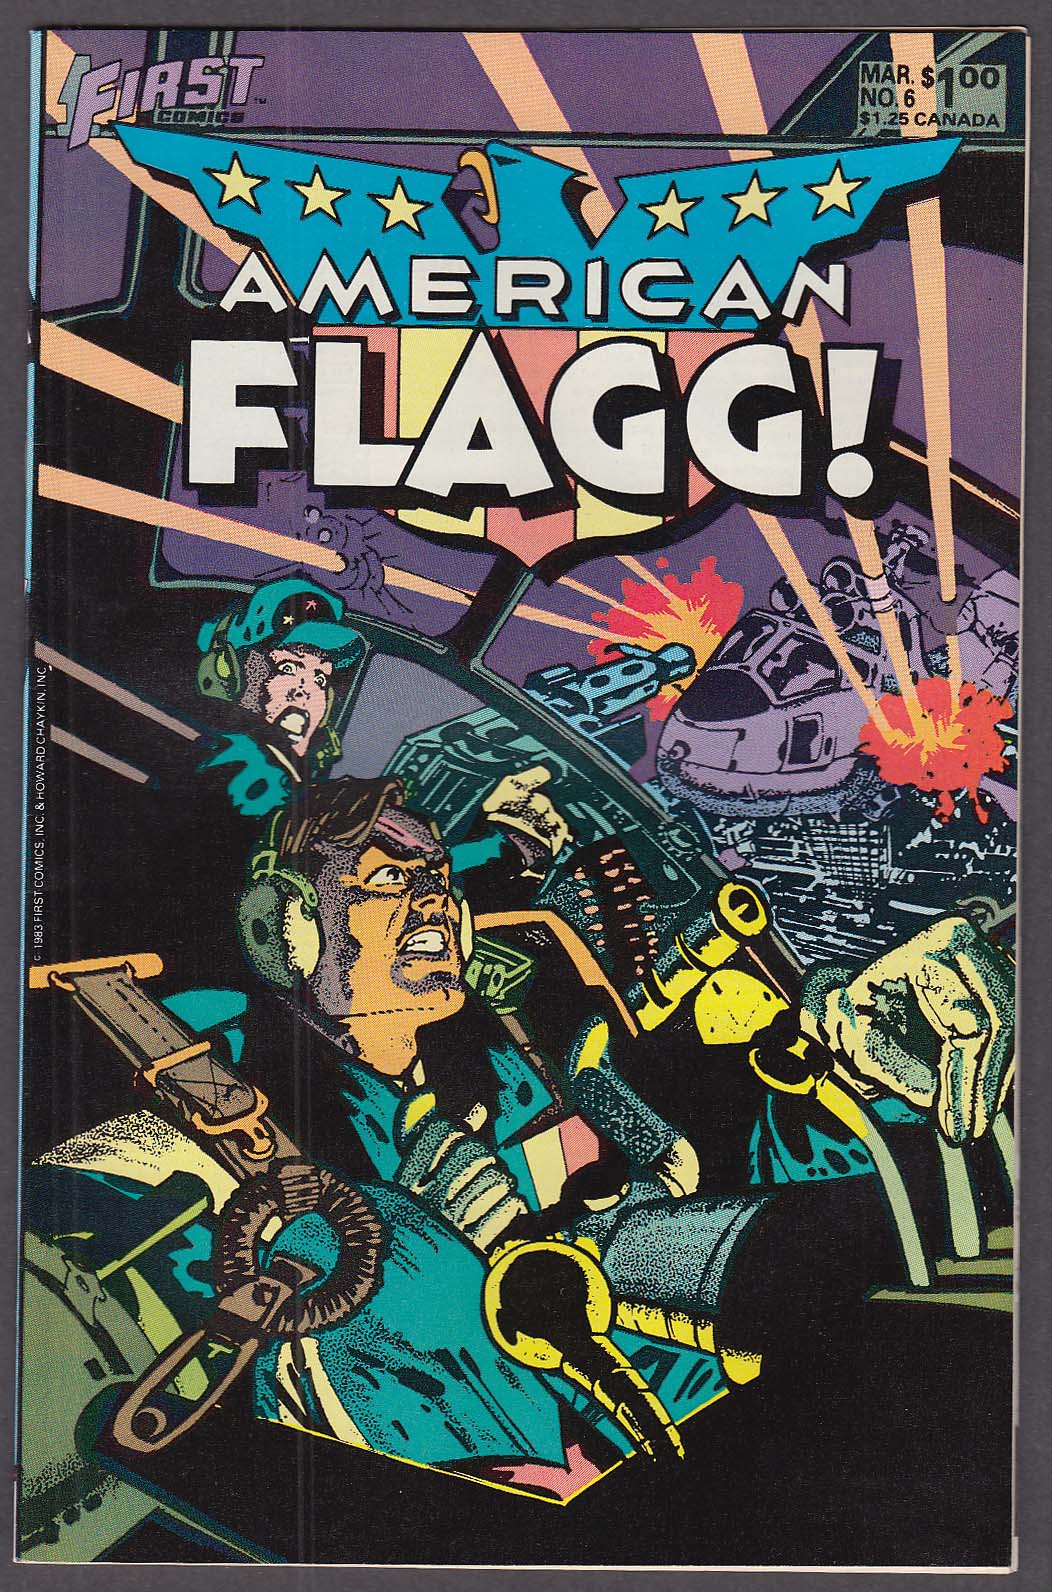 AMERICAN FLAGG! #6 First comic book 3 1984